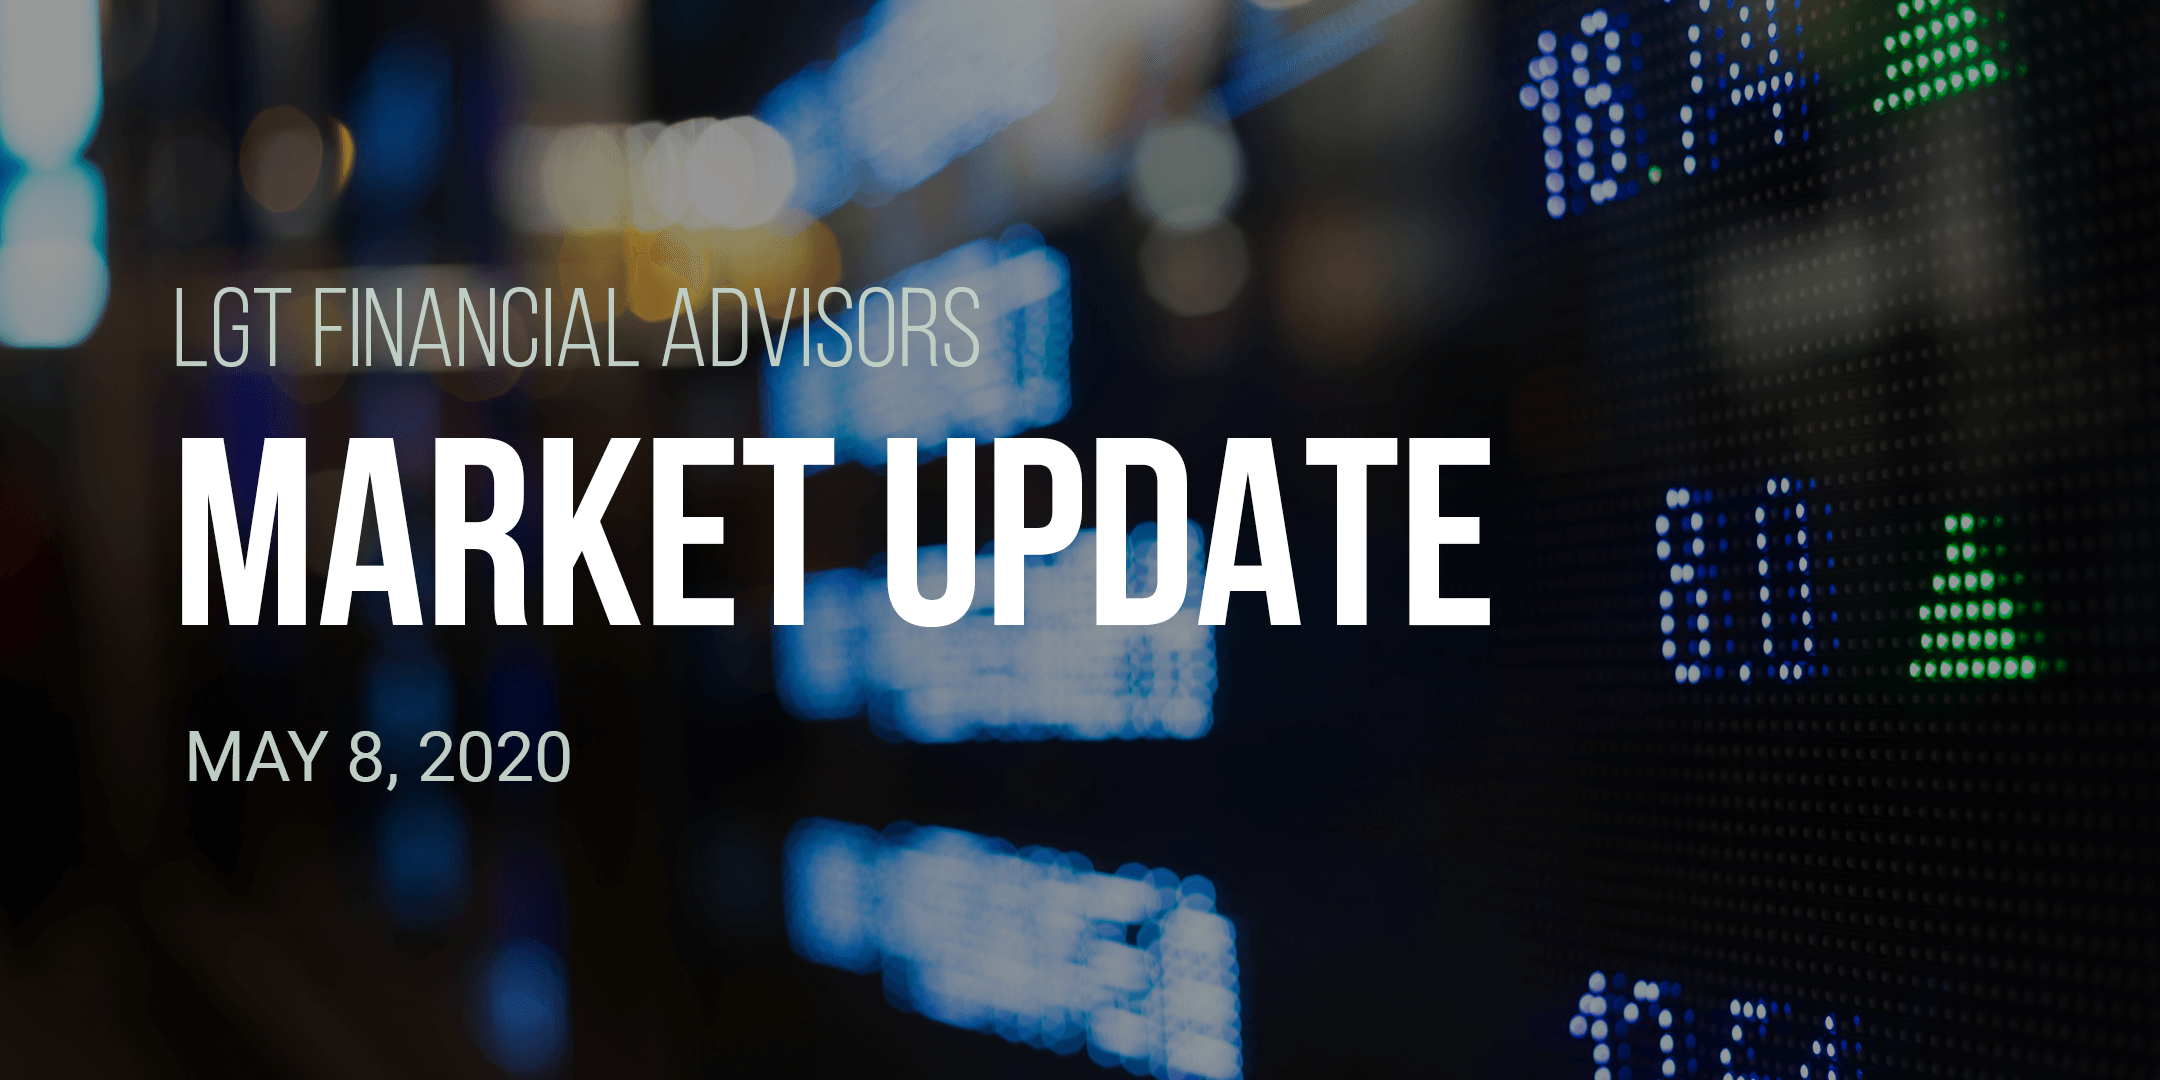 FA Market Update - May 8, 2020